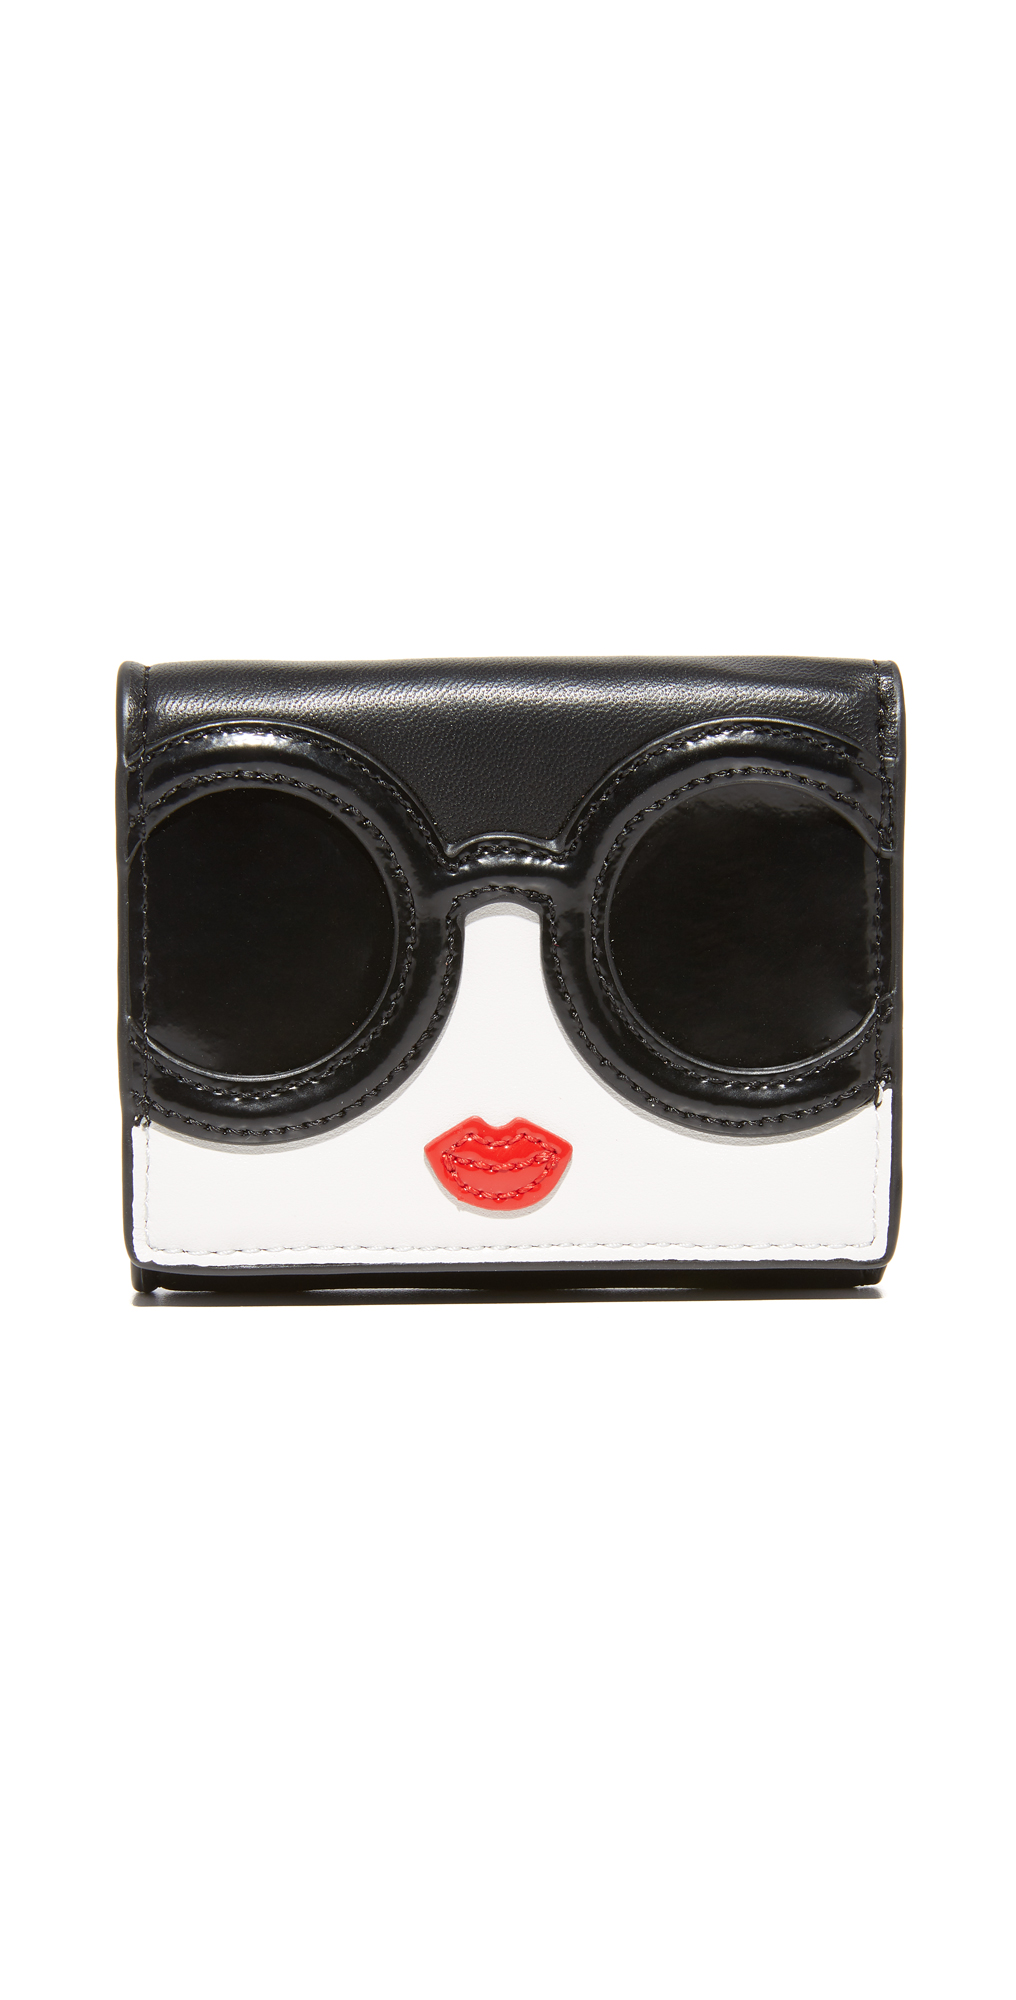 Stace Face Trifold Wallet alice   olivia